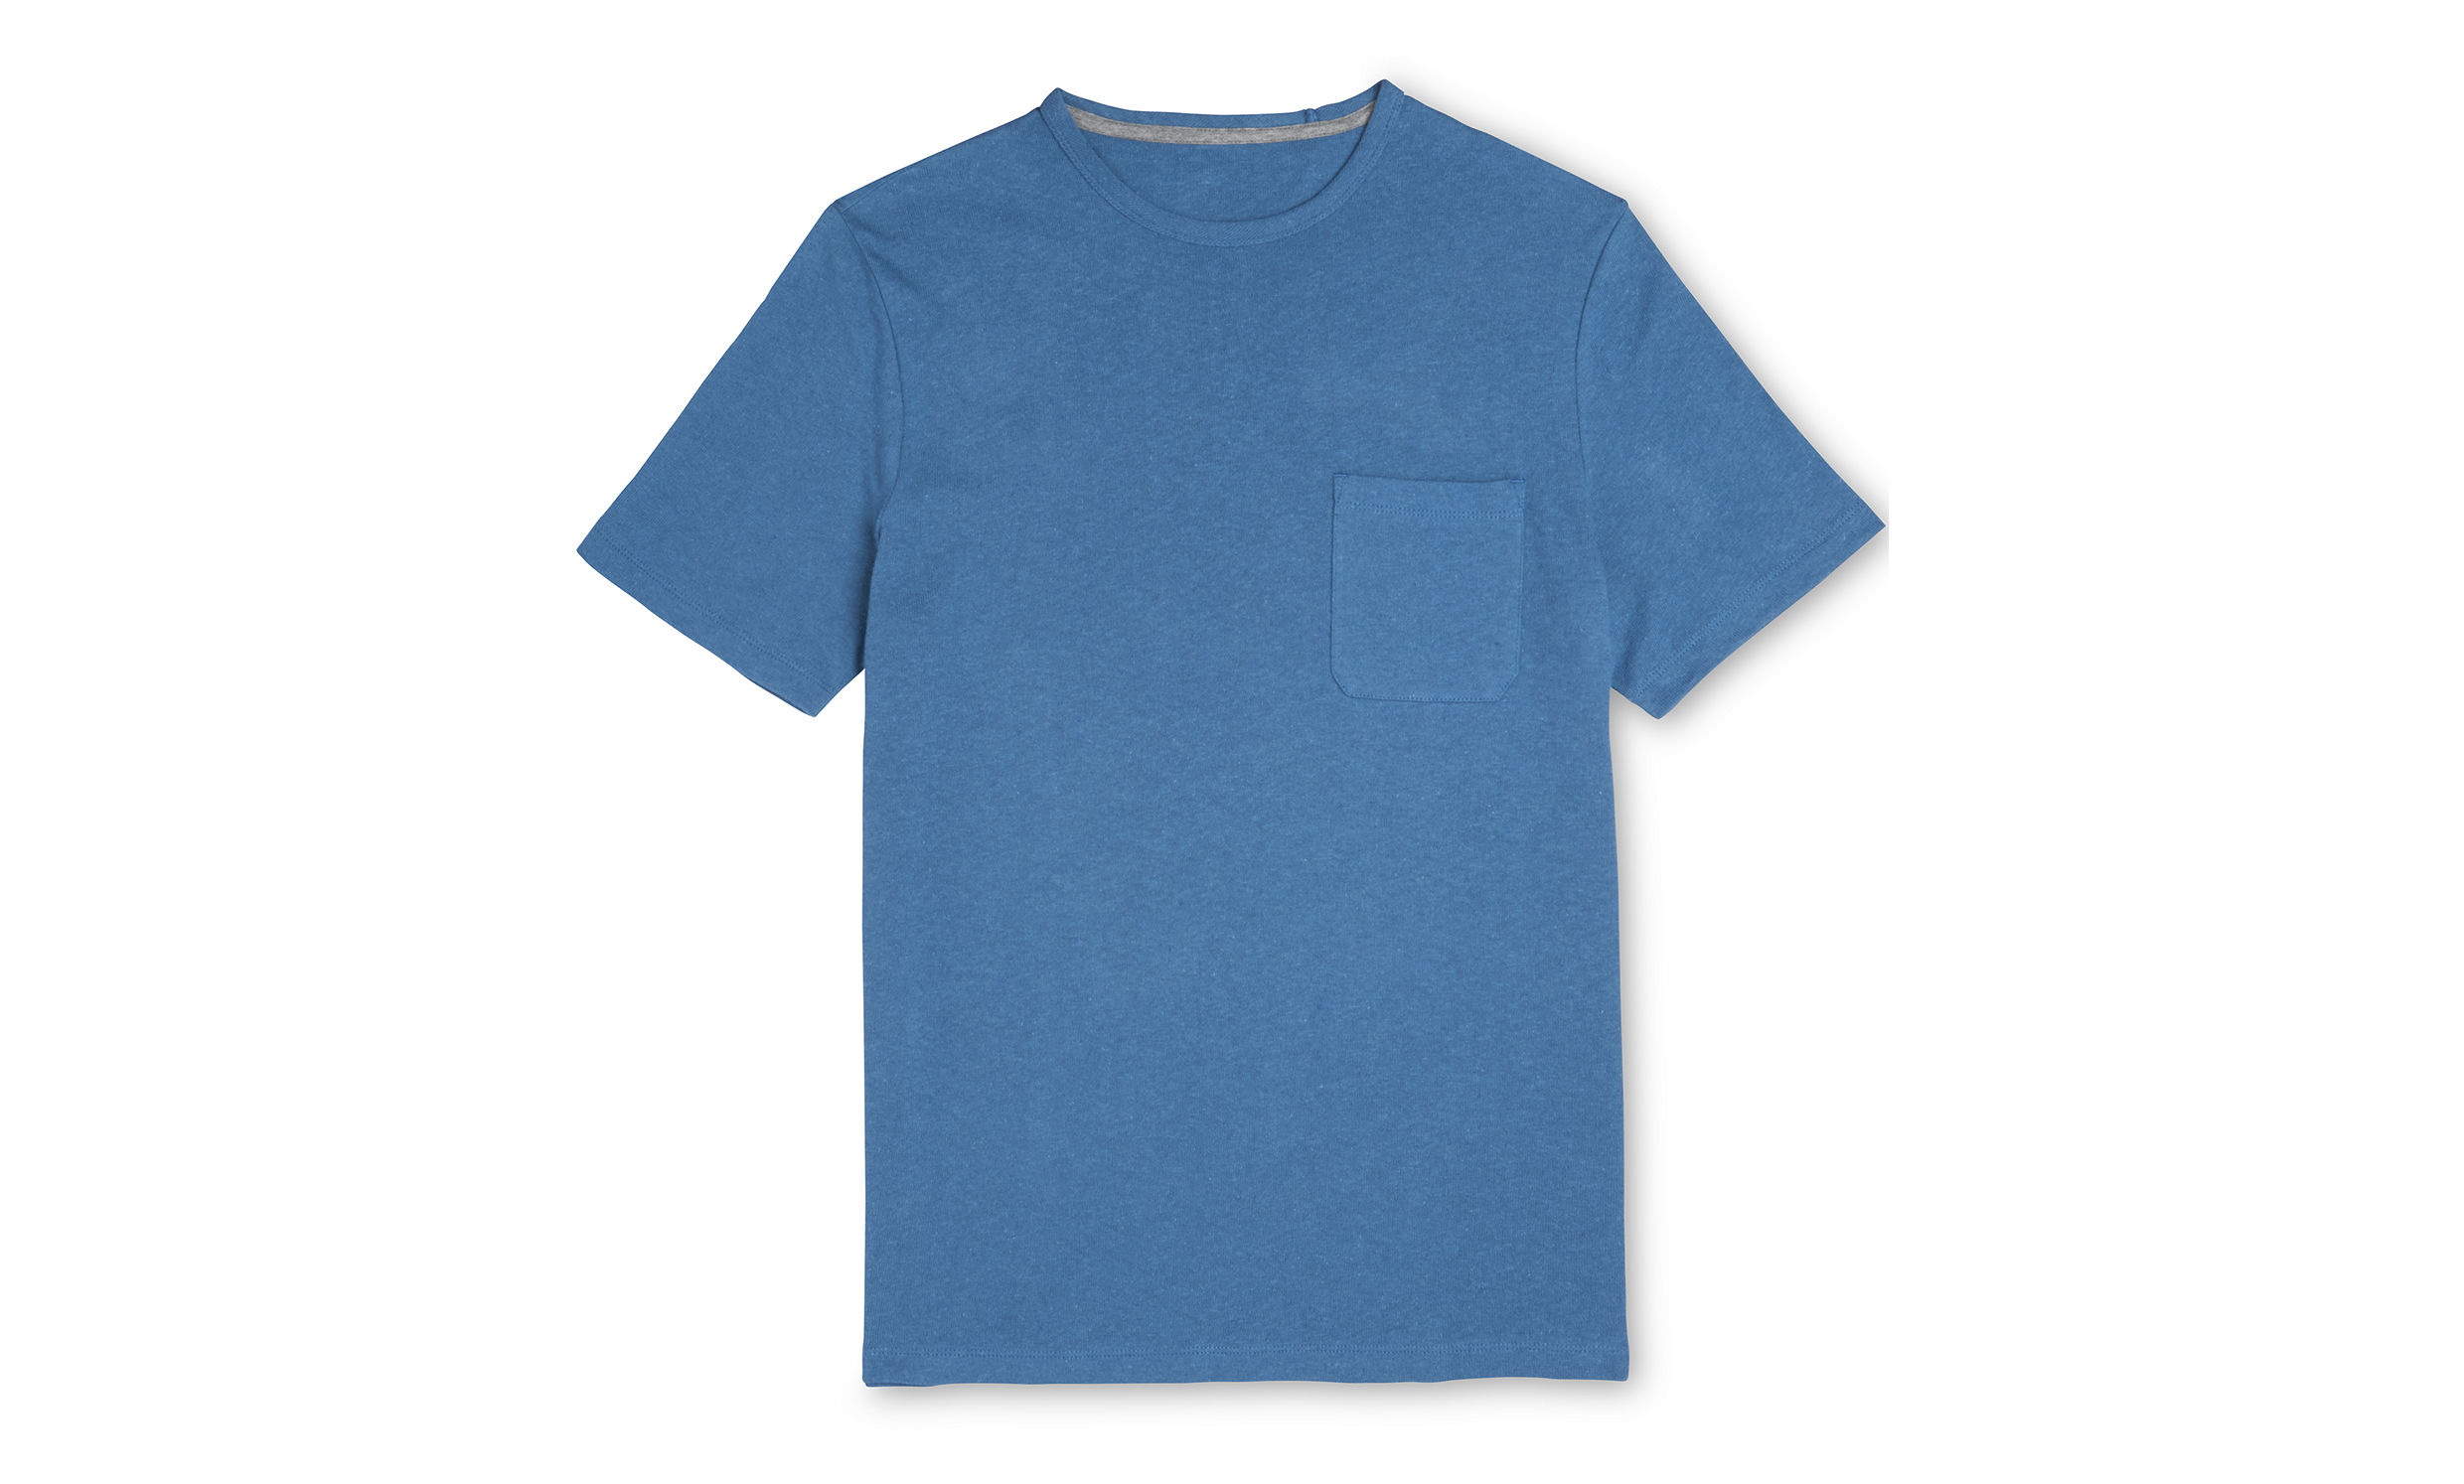 Whistles Blue Crumple everyday t-shirt